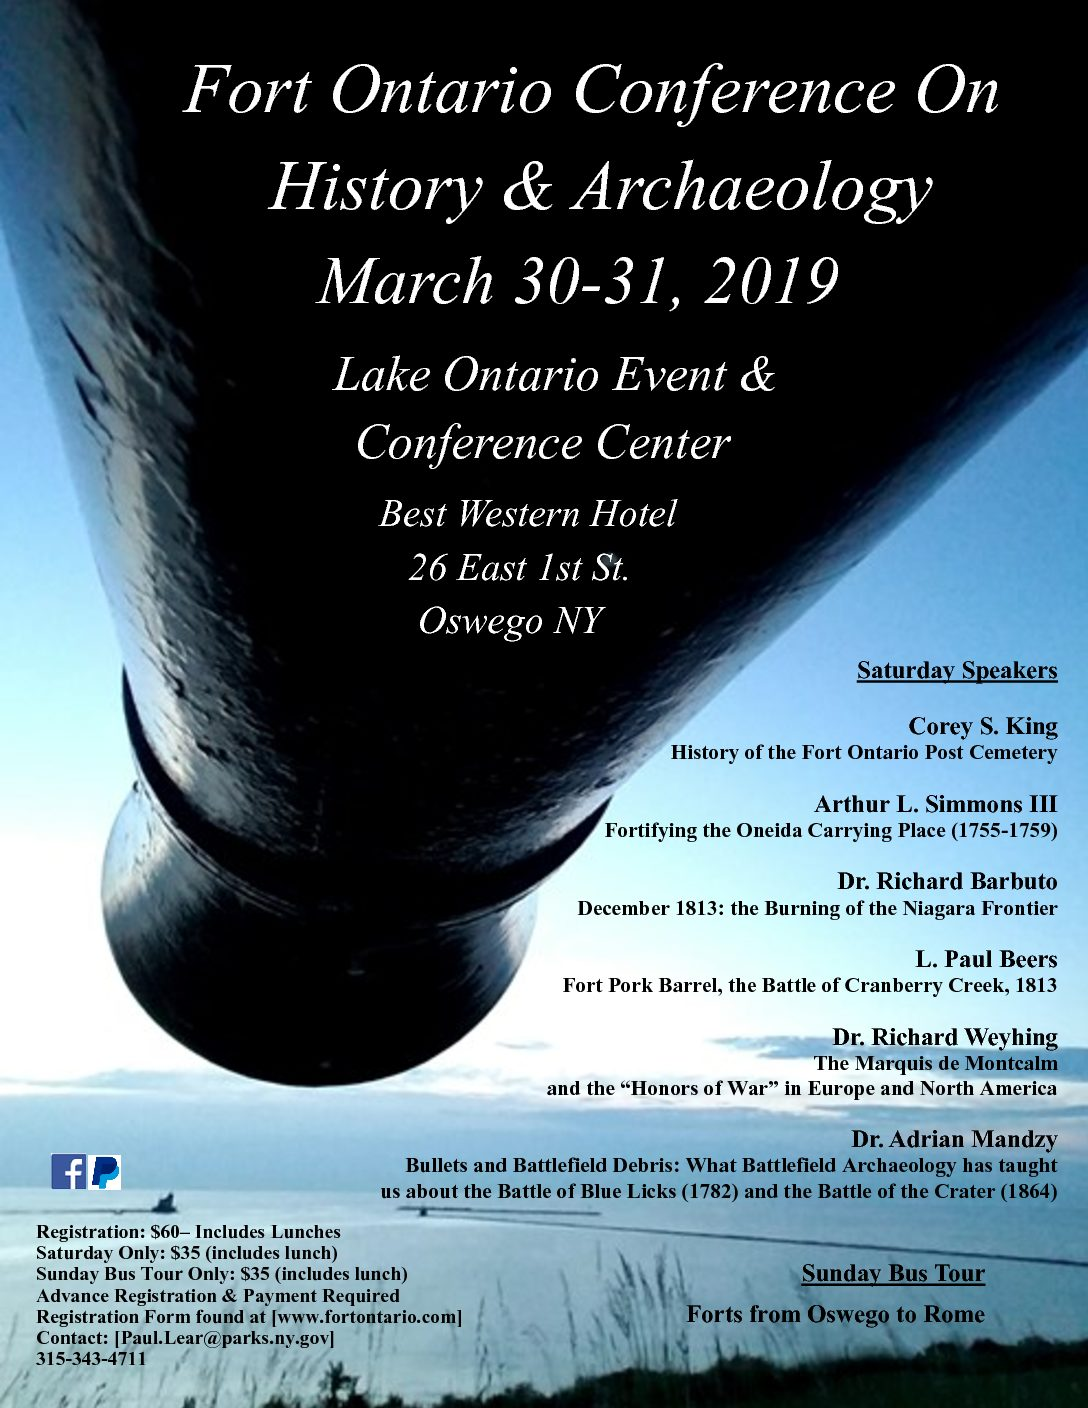 Fort Ontario Conference on History & Archeology – Historic